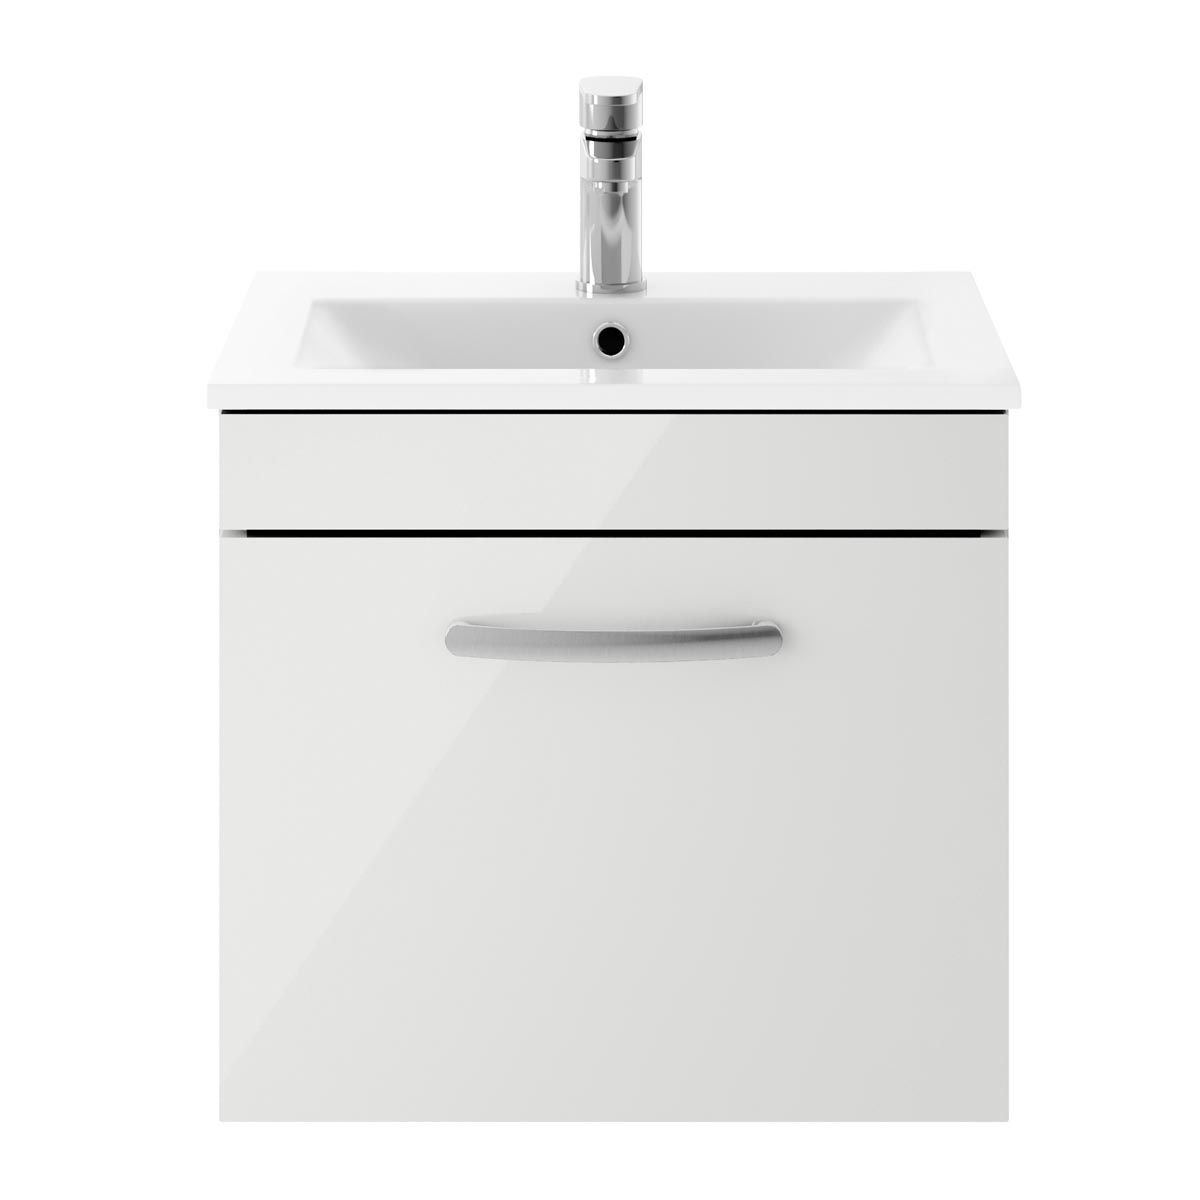 Nuie Athena Gloss Grey Mist 1 Drawer Wall Hung Vanity Unit with 18mm Profile Basin 500mm